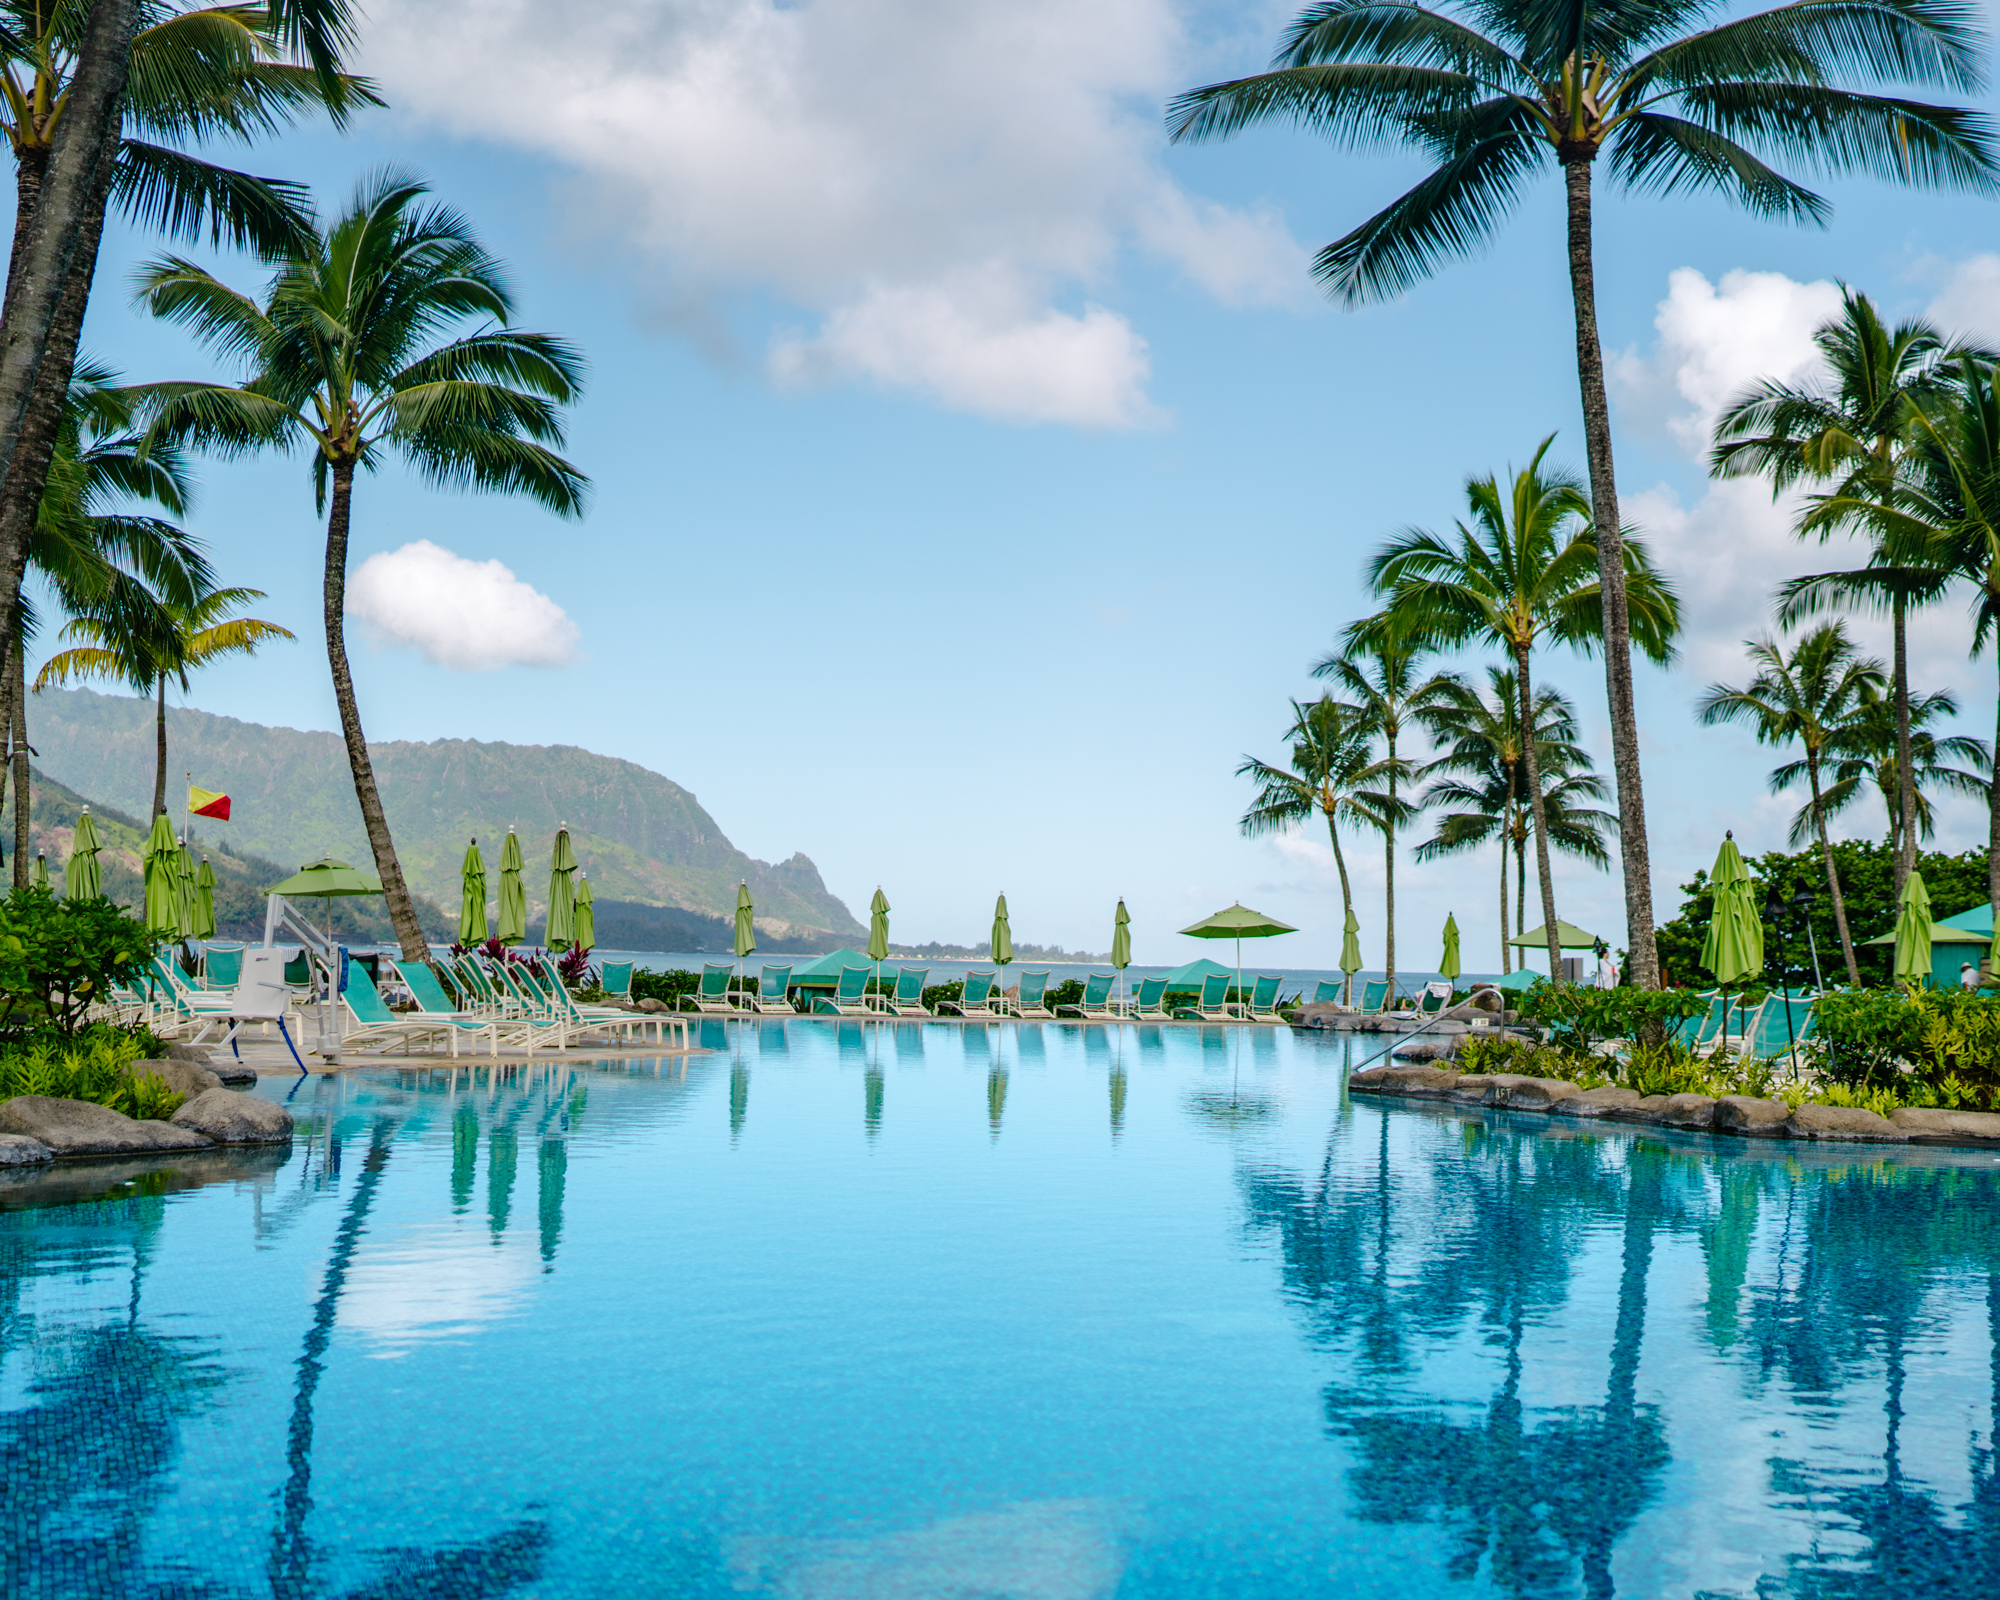 The pool at the St. Regis Princeville in Kauai